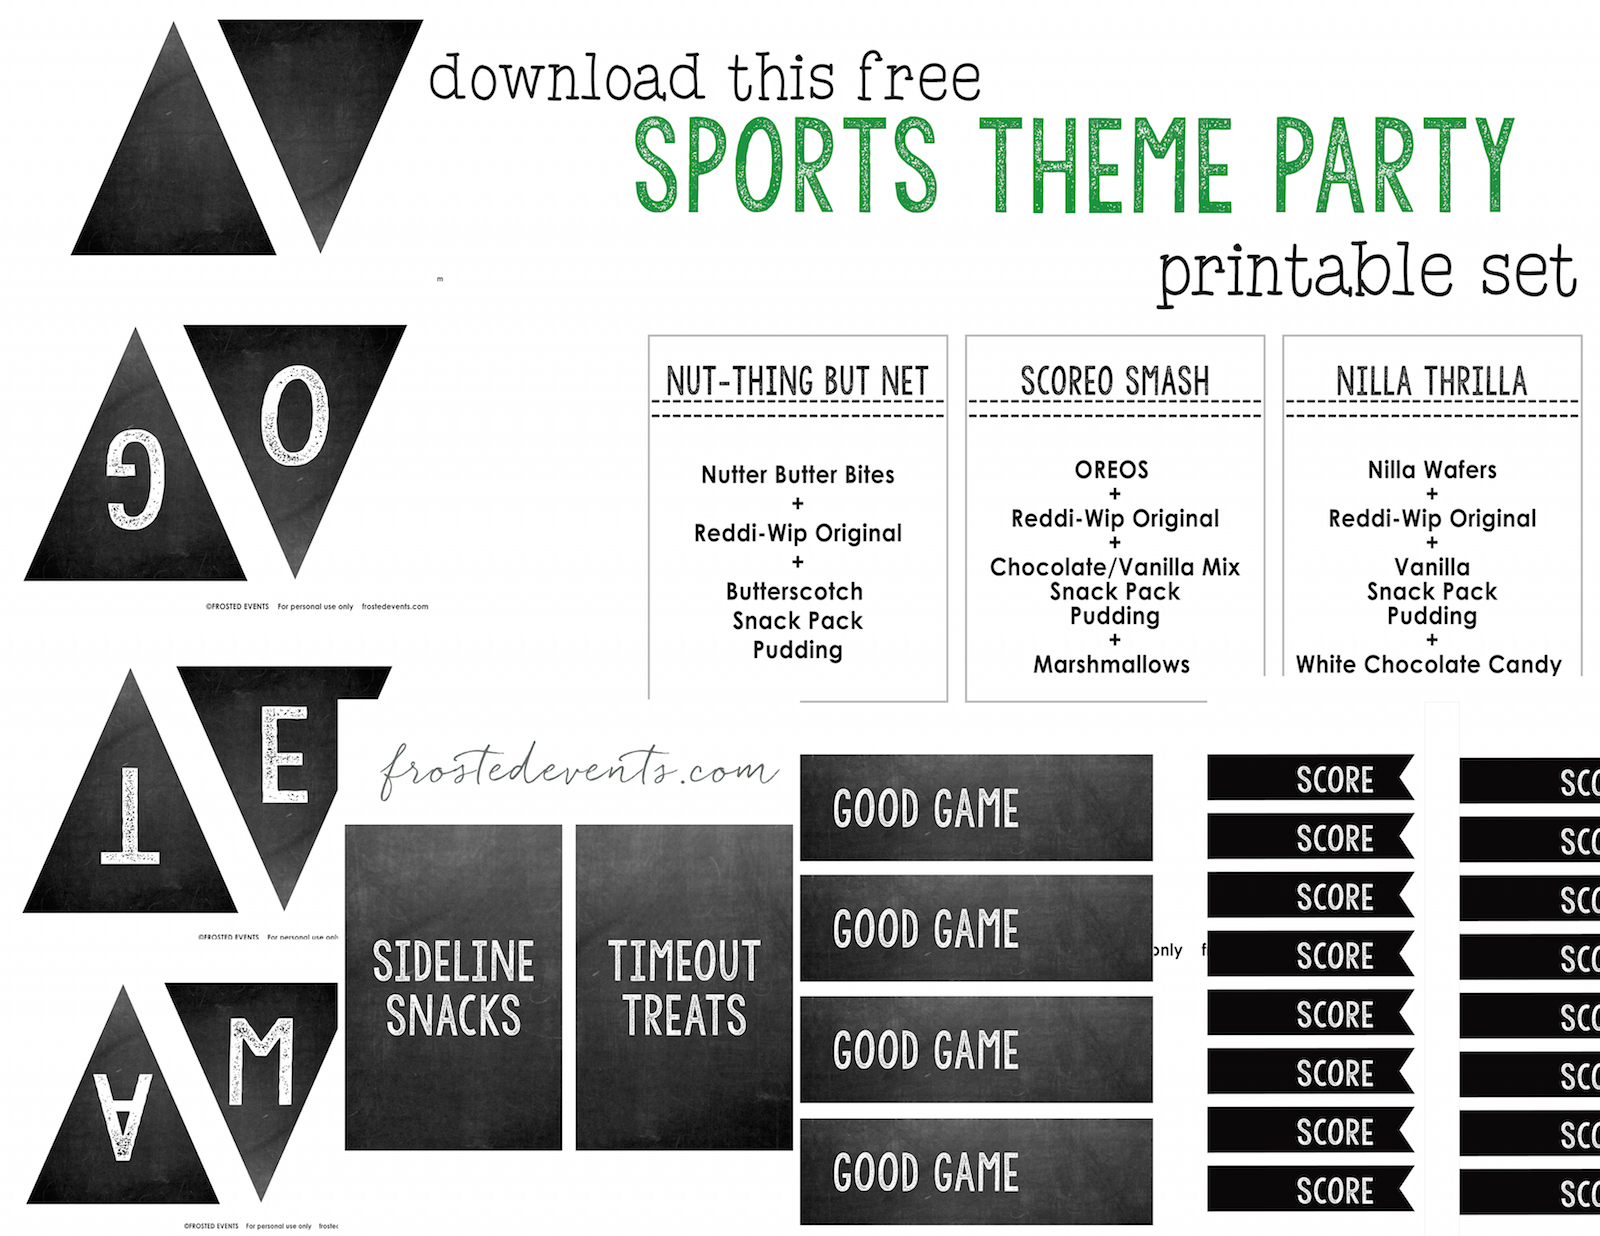 Easy Party Food Ideas- Sports Team Snack Table Free Sports Theme Party Printables